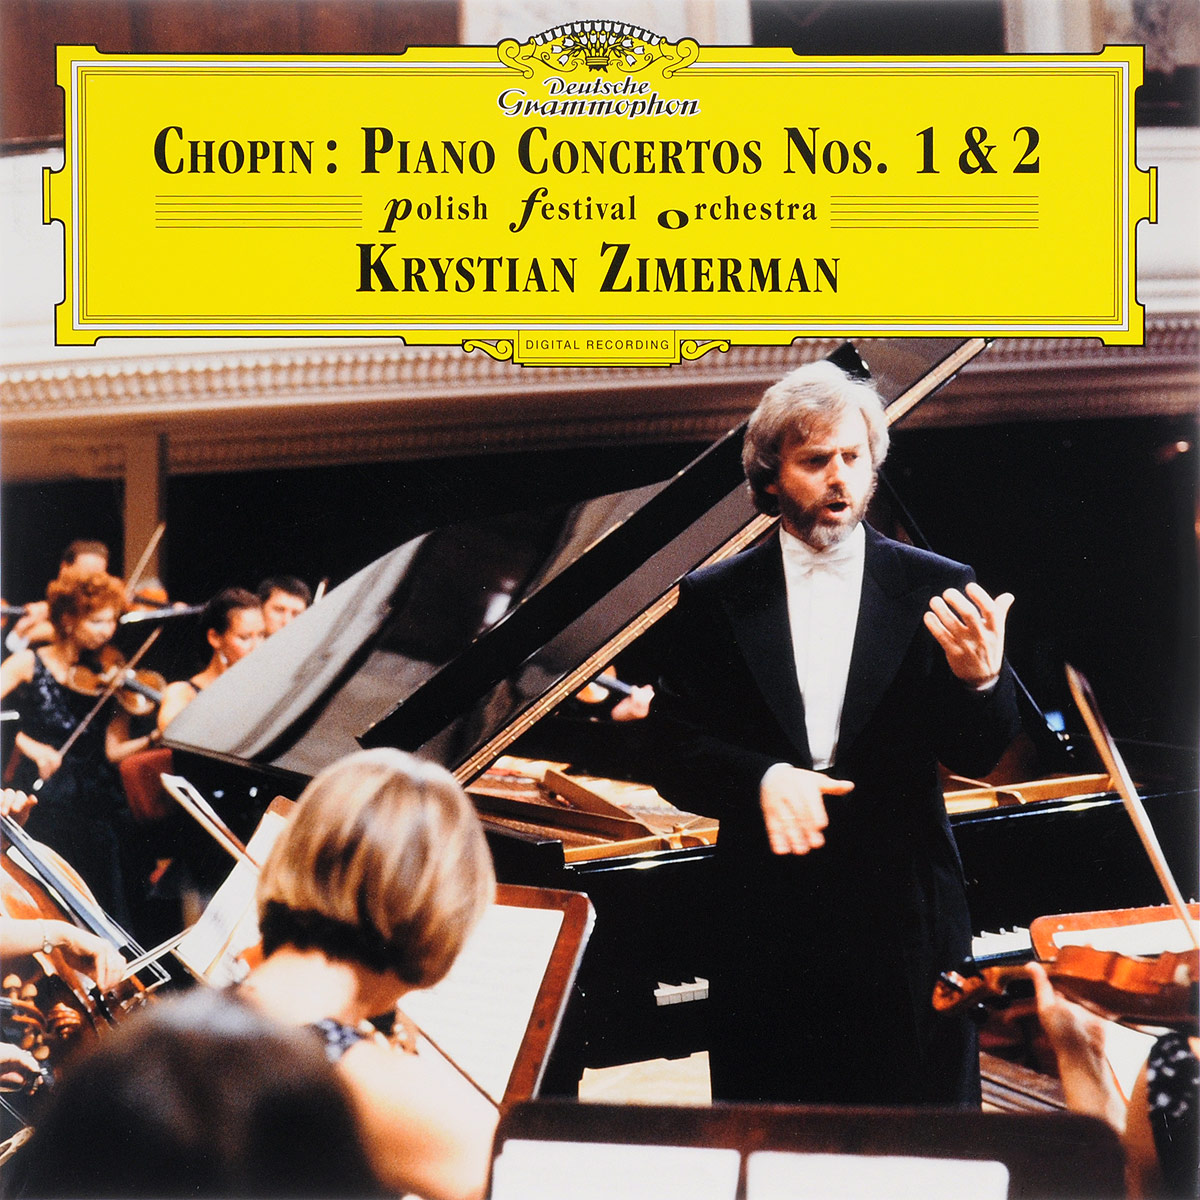 Кристиан Цимерман,Polish Festival Orchestra Krystian Zimerman. Chopin. Piano Concertos Nos. 1 & 2 (2 LP) 4 hepa filter 6 side brush 3l 3r kit for ecovacs dibea x500 x580